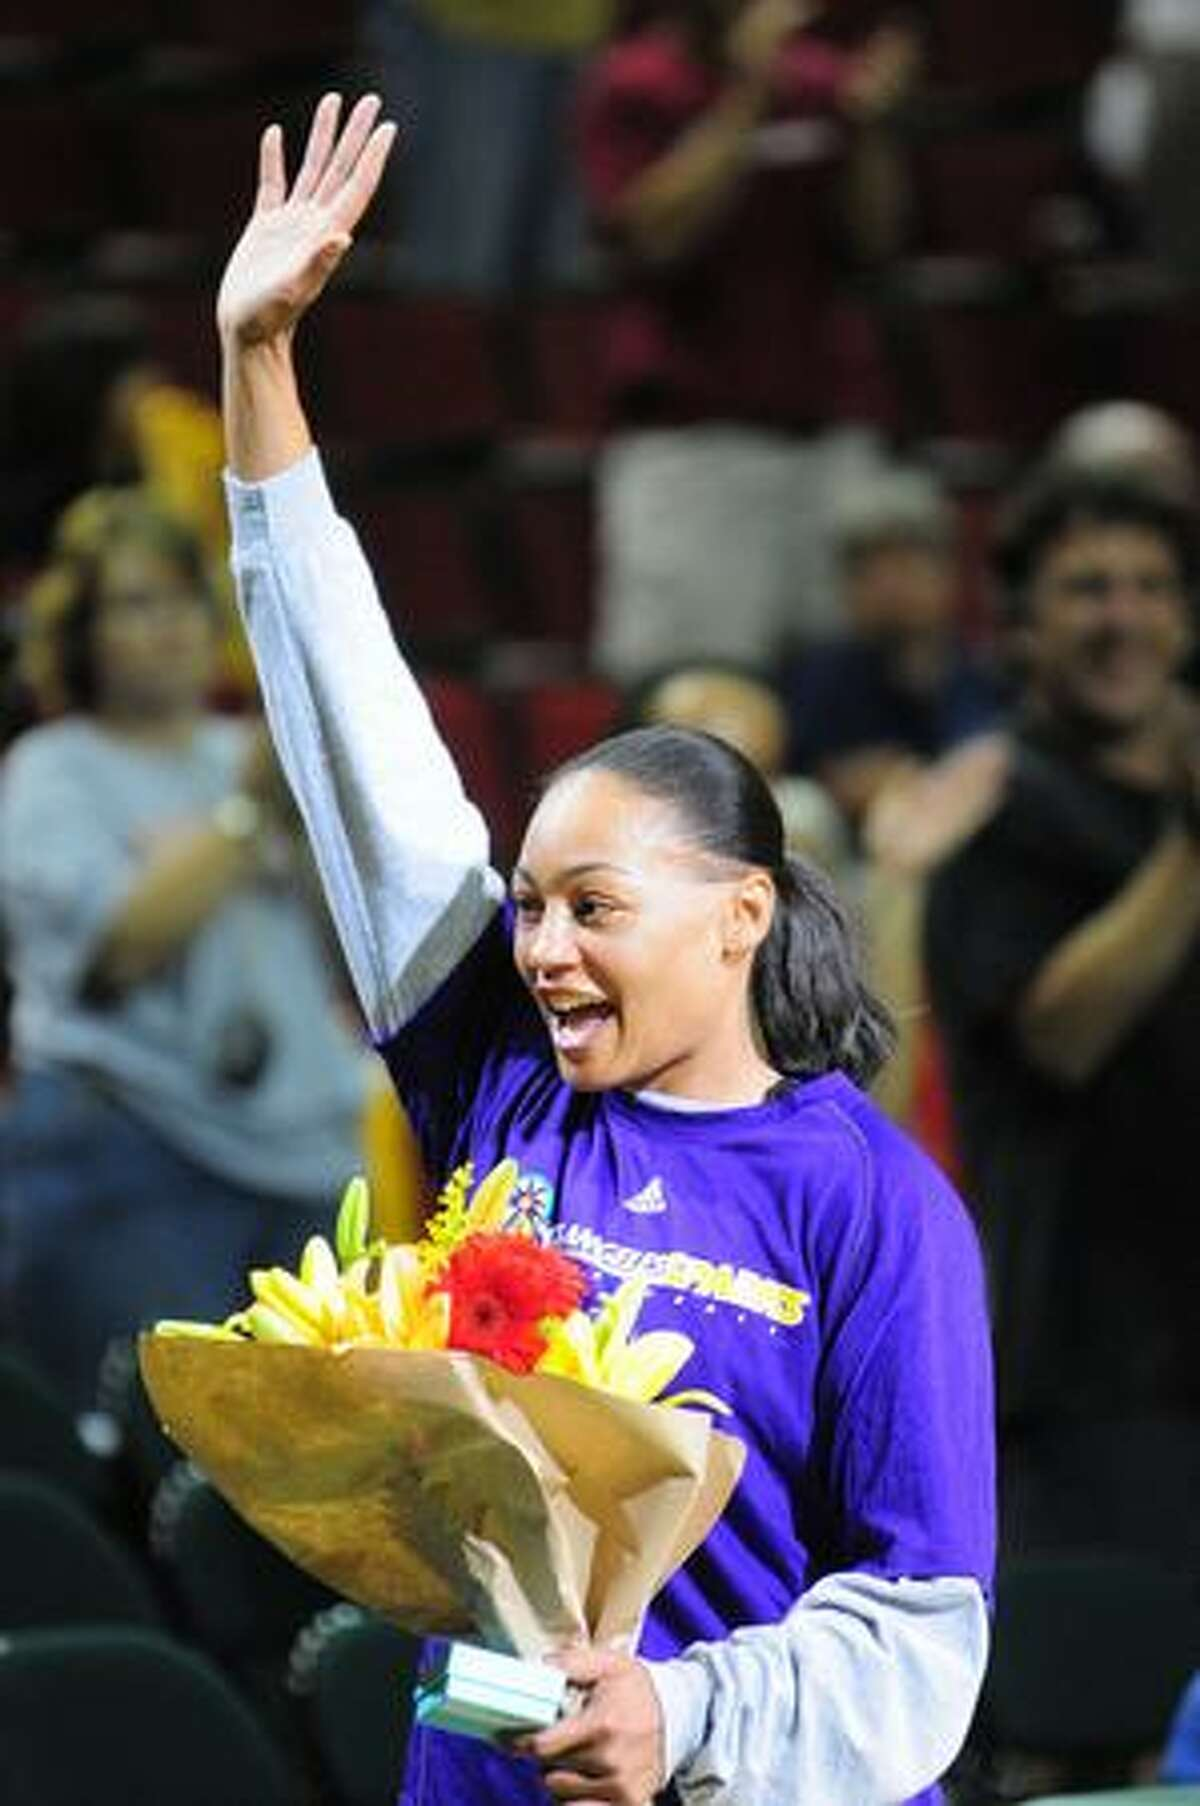 Betty Lennox of the Los Angeles Sparks waves to the crowd after being presented with flowers by Seattle Storm CEO Karen Bryant at the start of the game Wednesday July 23, 2009.